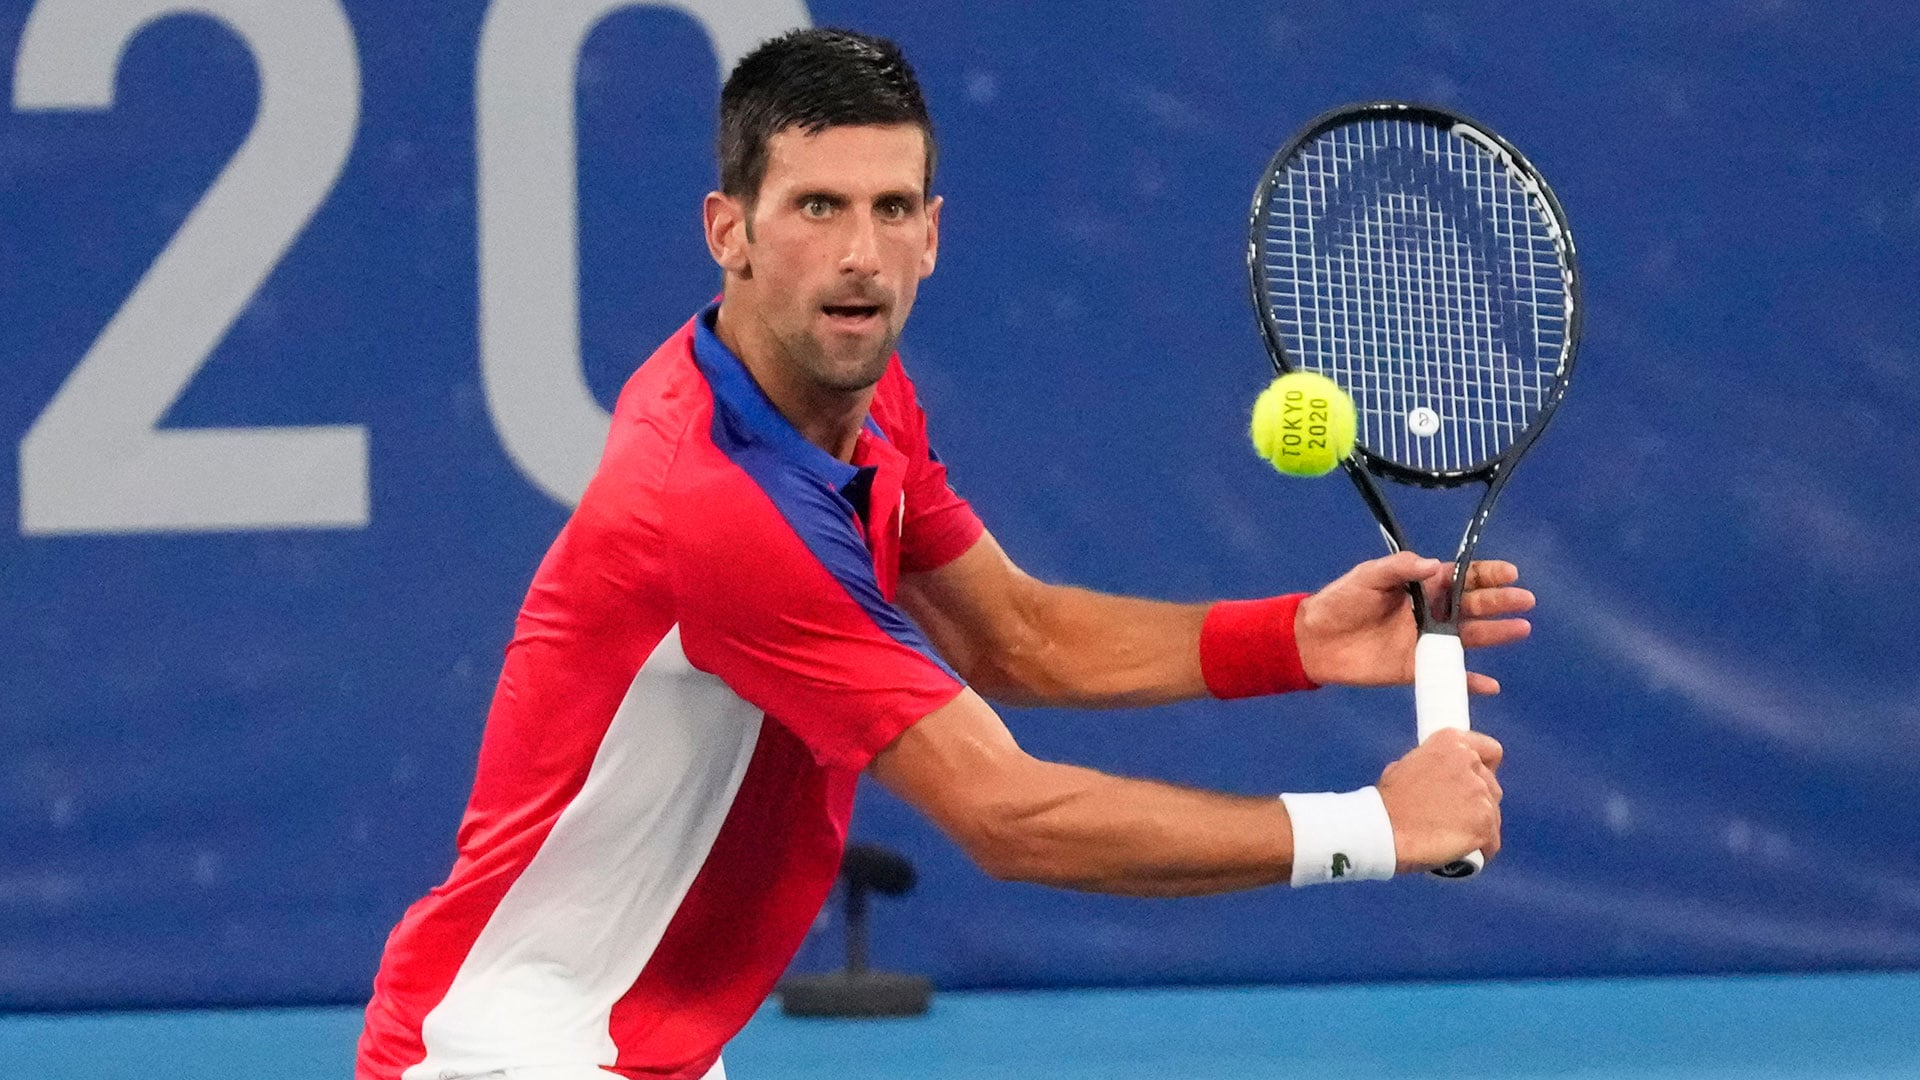 Image for Djokovic to play for bronze medal in Tokyo after loss to Zverev